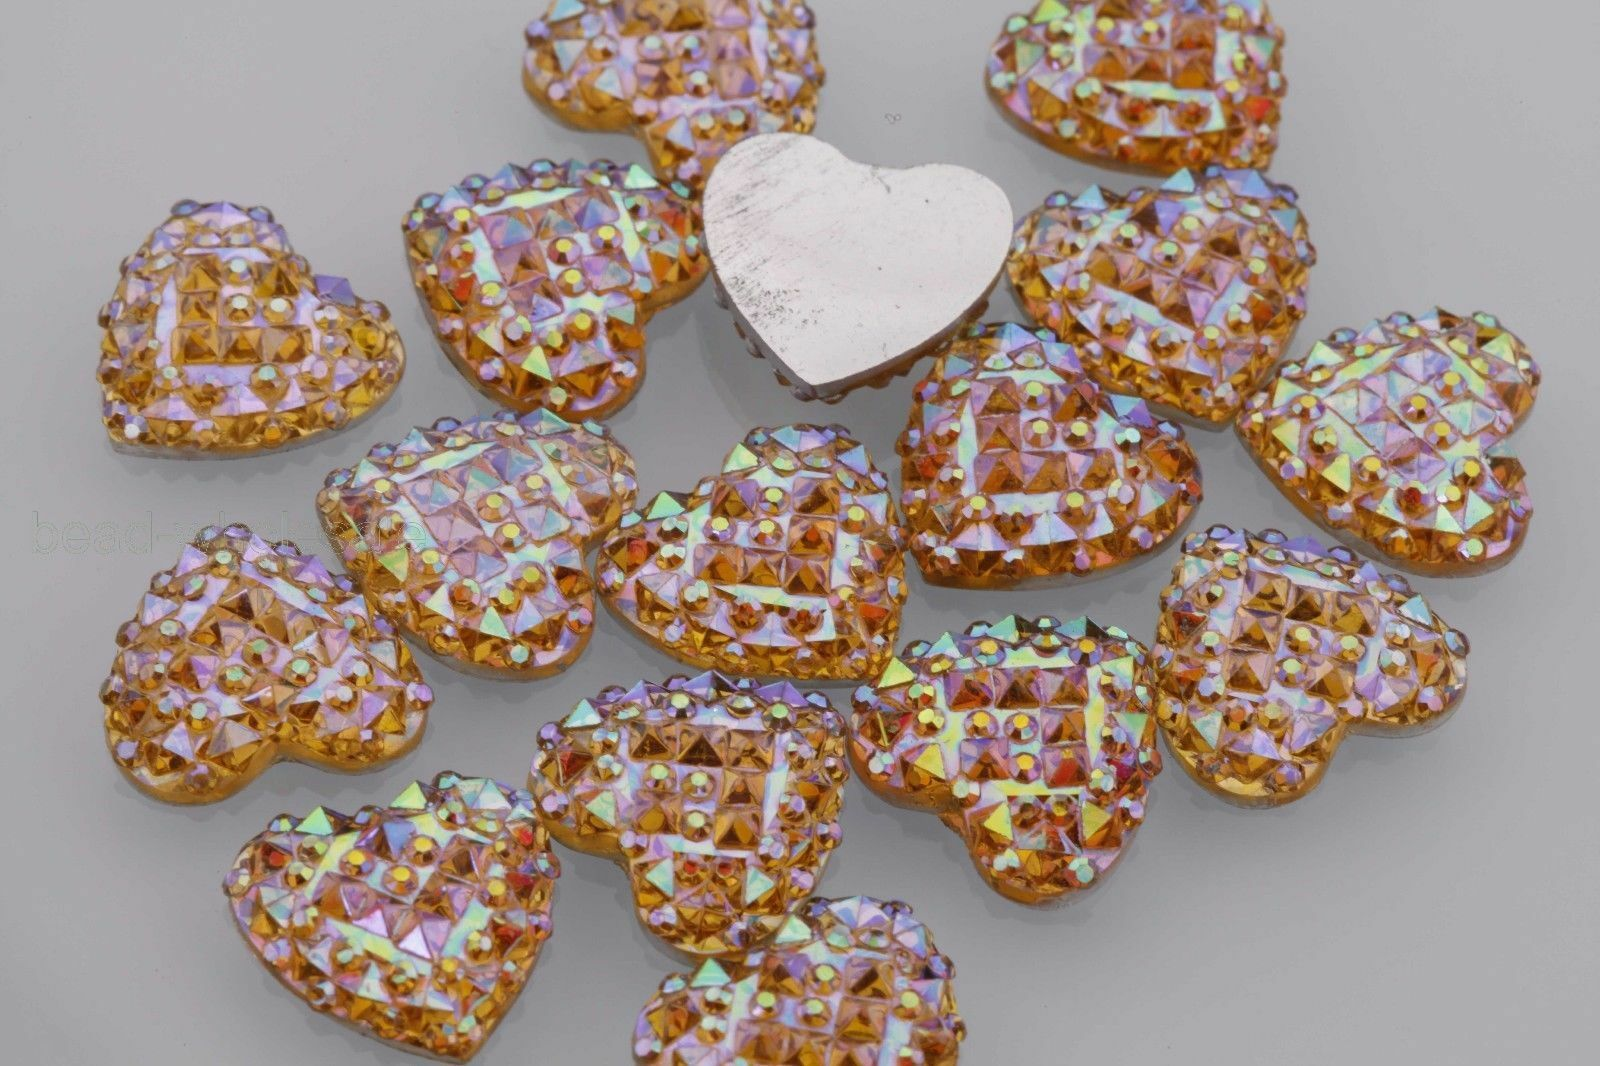 40pcs MIX  12mm AB Resin heart snowflake flatback Scrapbooking for phone//crafts